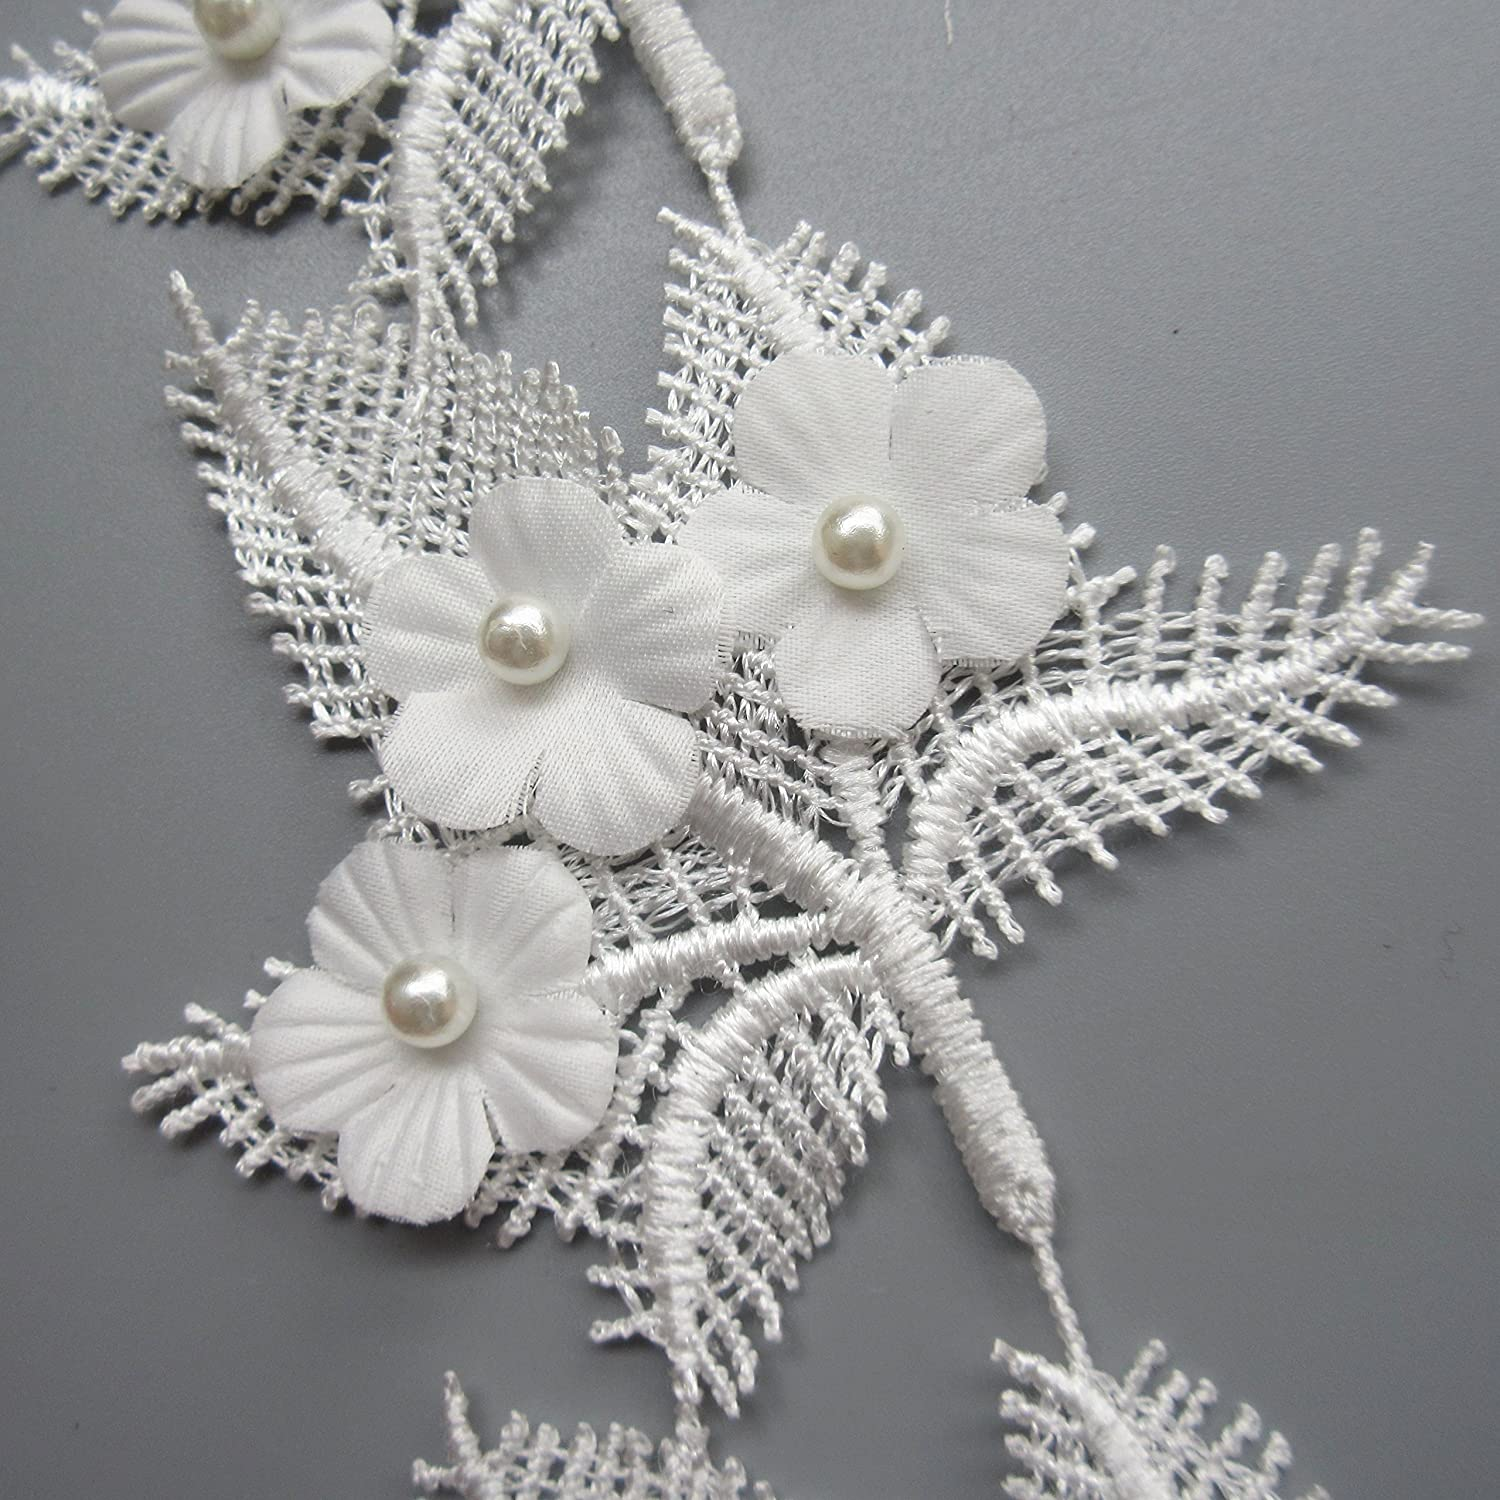 1 Yard Eyelash Maple Leaf Shape Flower Pearl Lace Edge Trim Ribbon 7.5*8.5 cm Width Vintage Style White Edging Trimmings Fabric Embroidered Applique Sewing Craft Wedding Bridal Dress DIY Party Clothes Embroidery